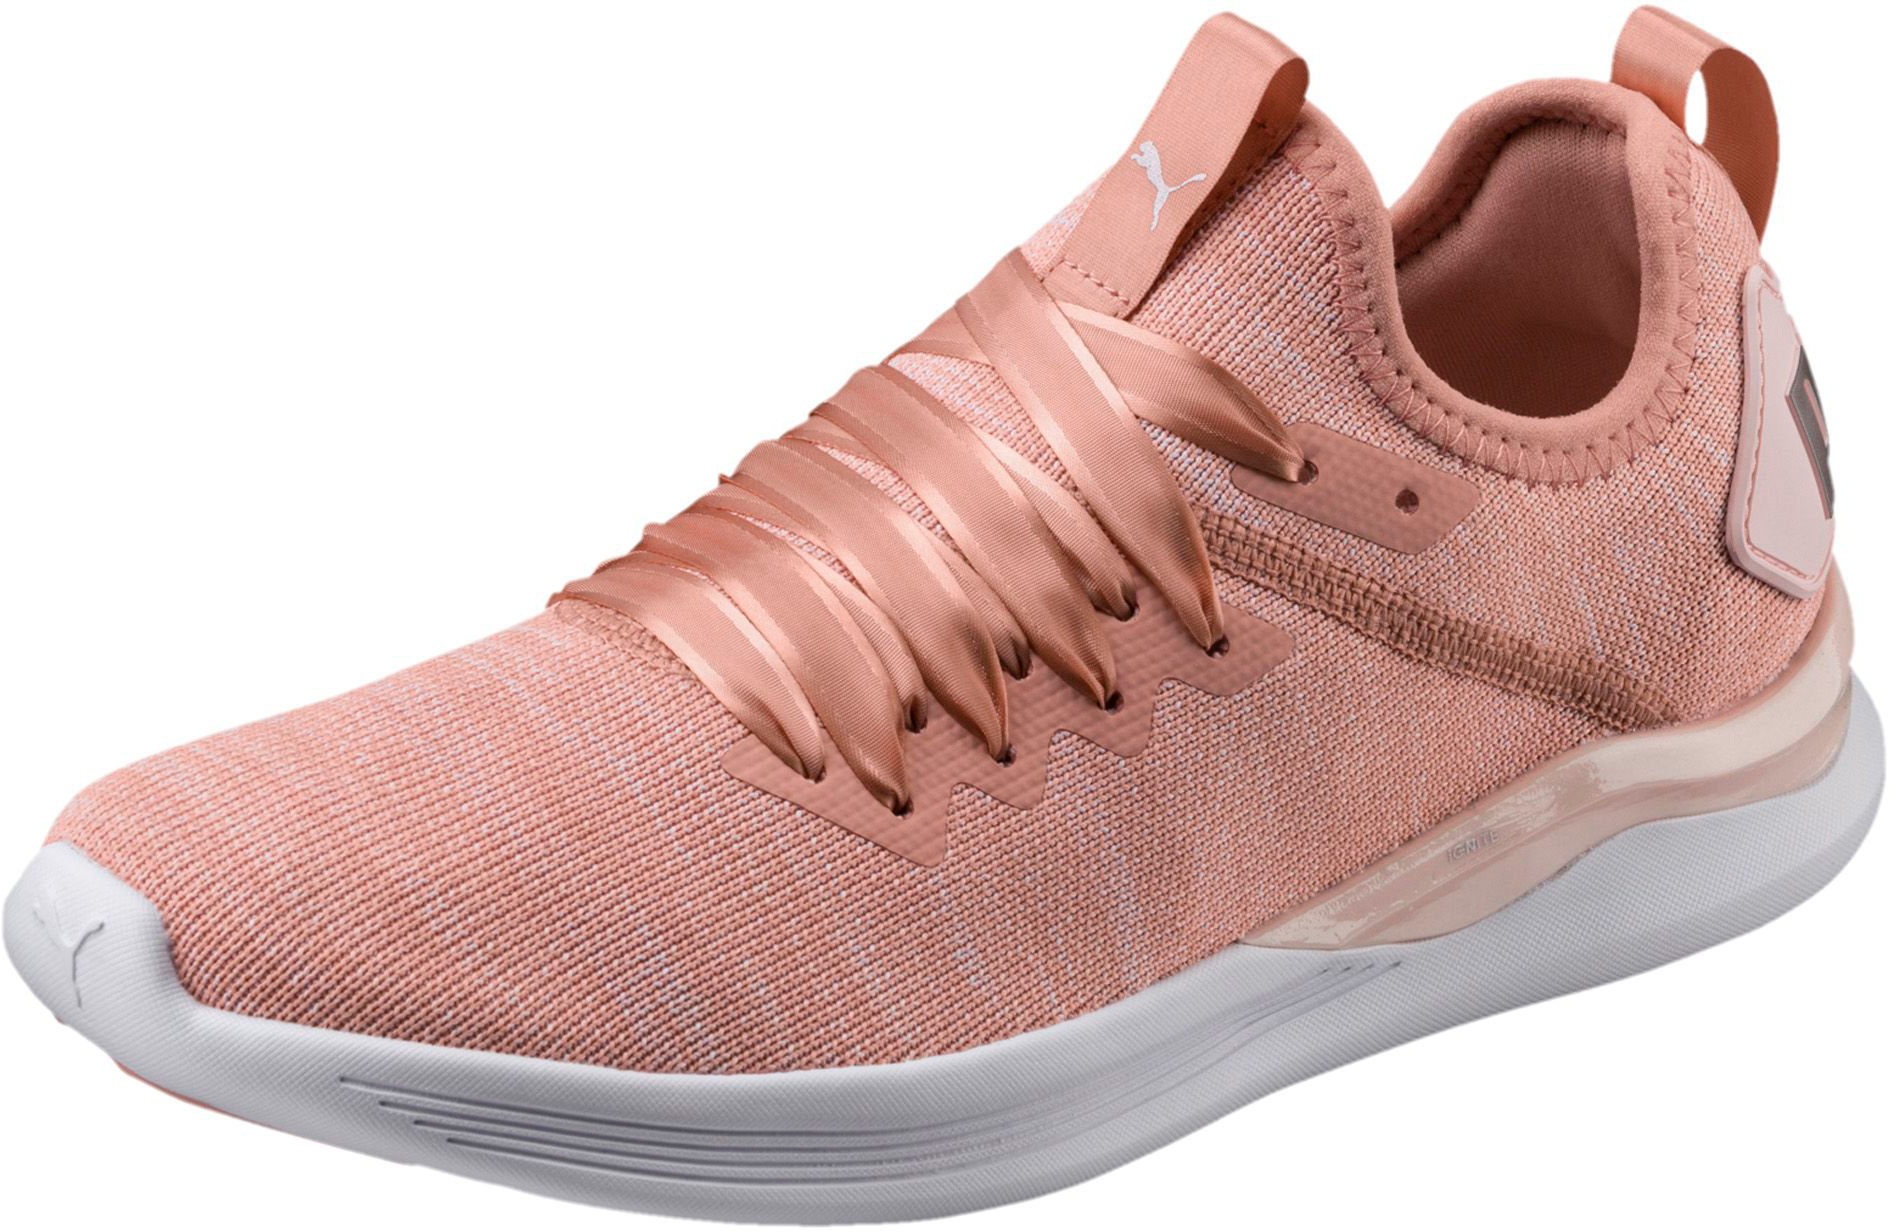 Chaussures Flash RunningPuma Ignite Ep Evoknit De Satin Women's 1KTJ3Flc